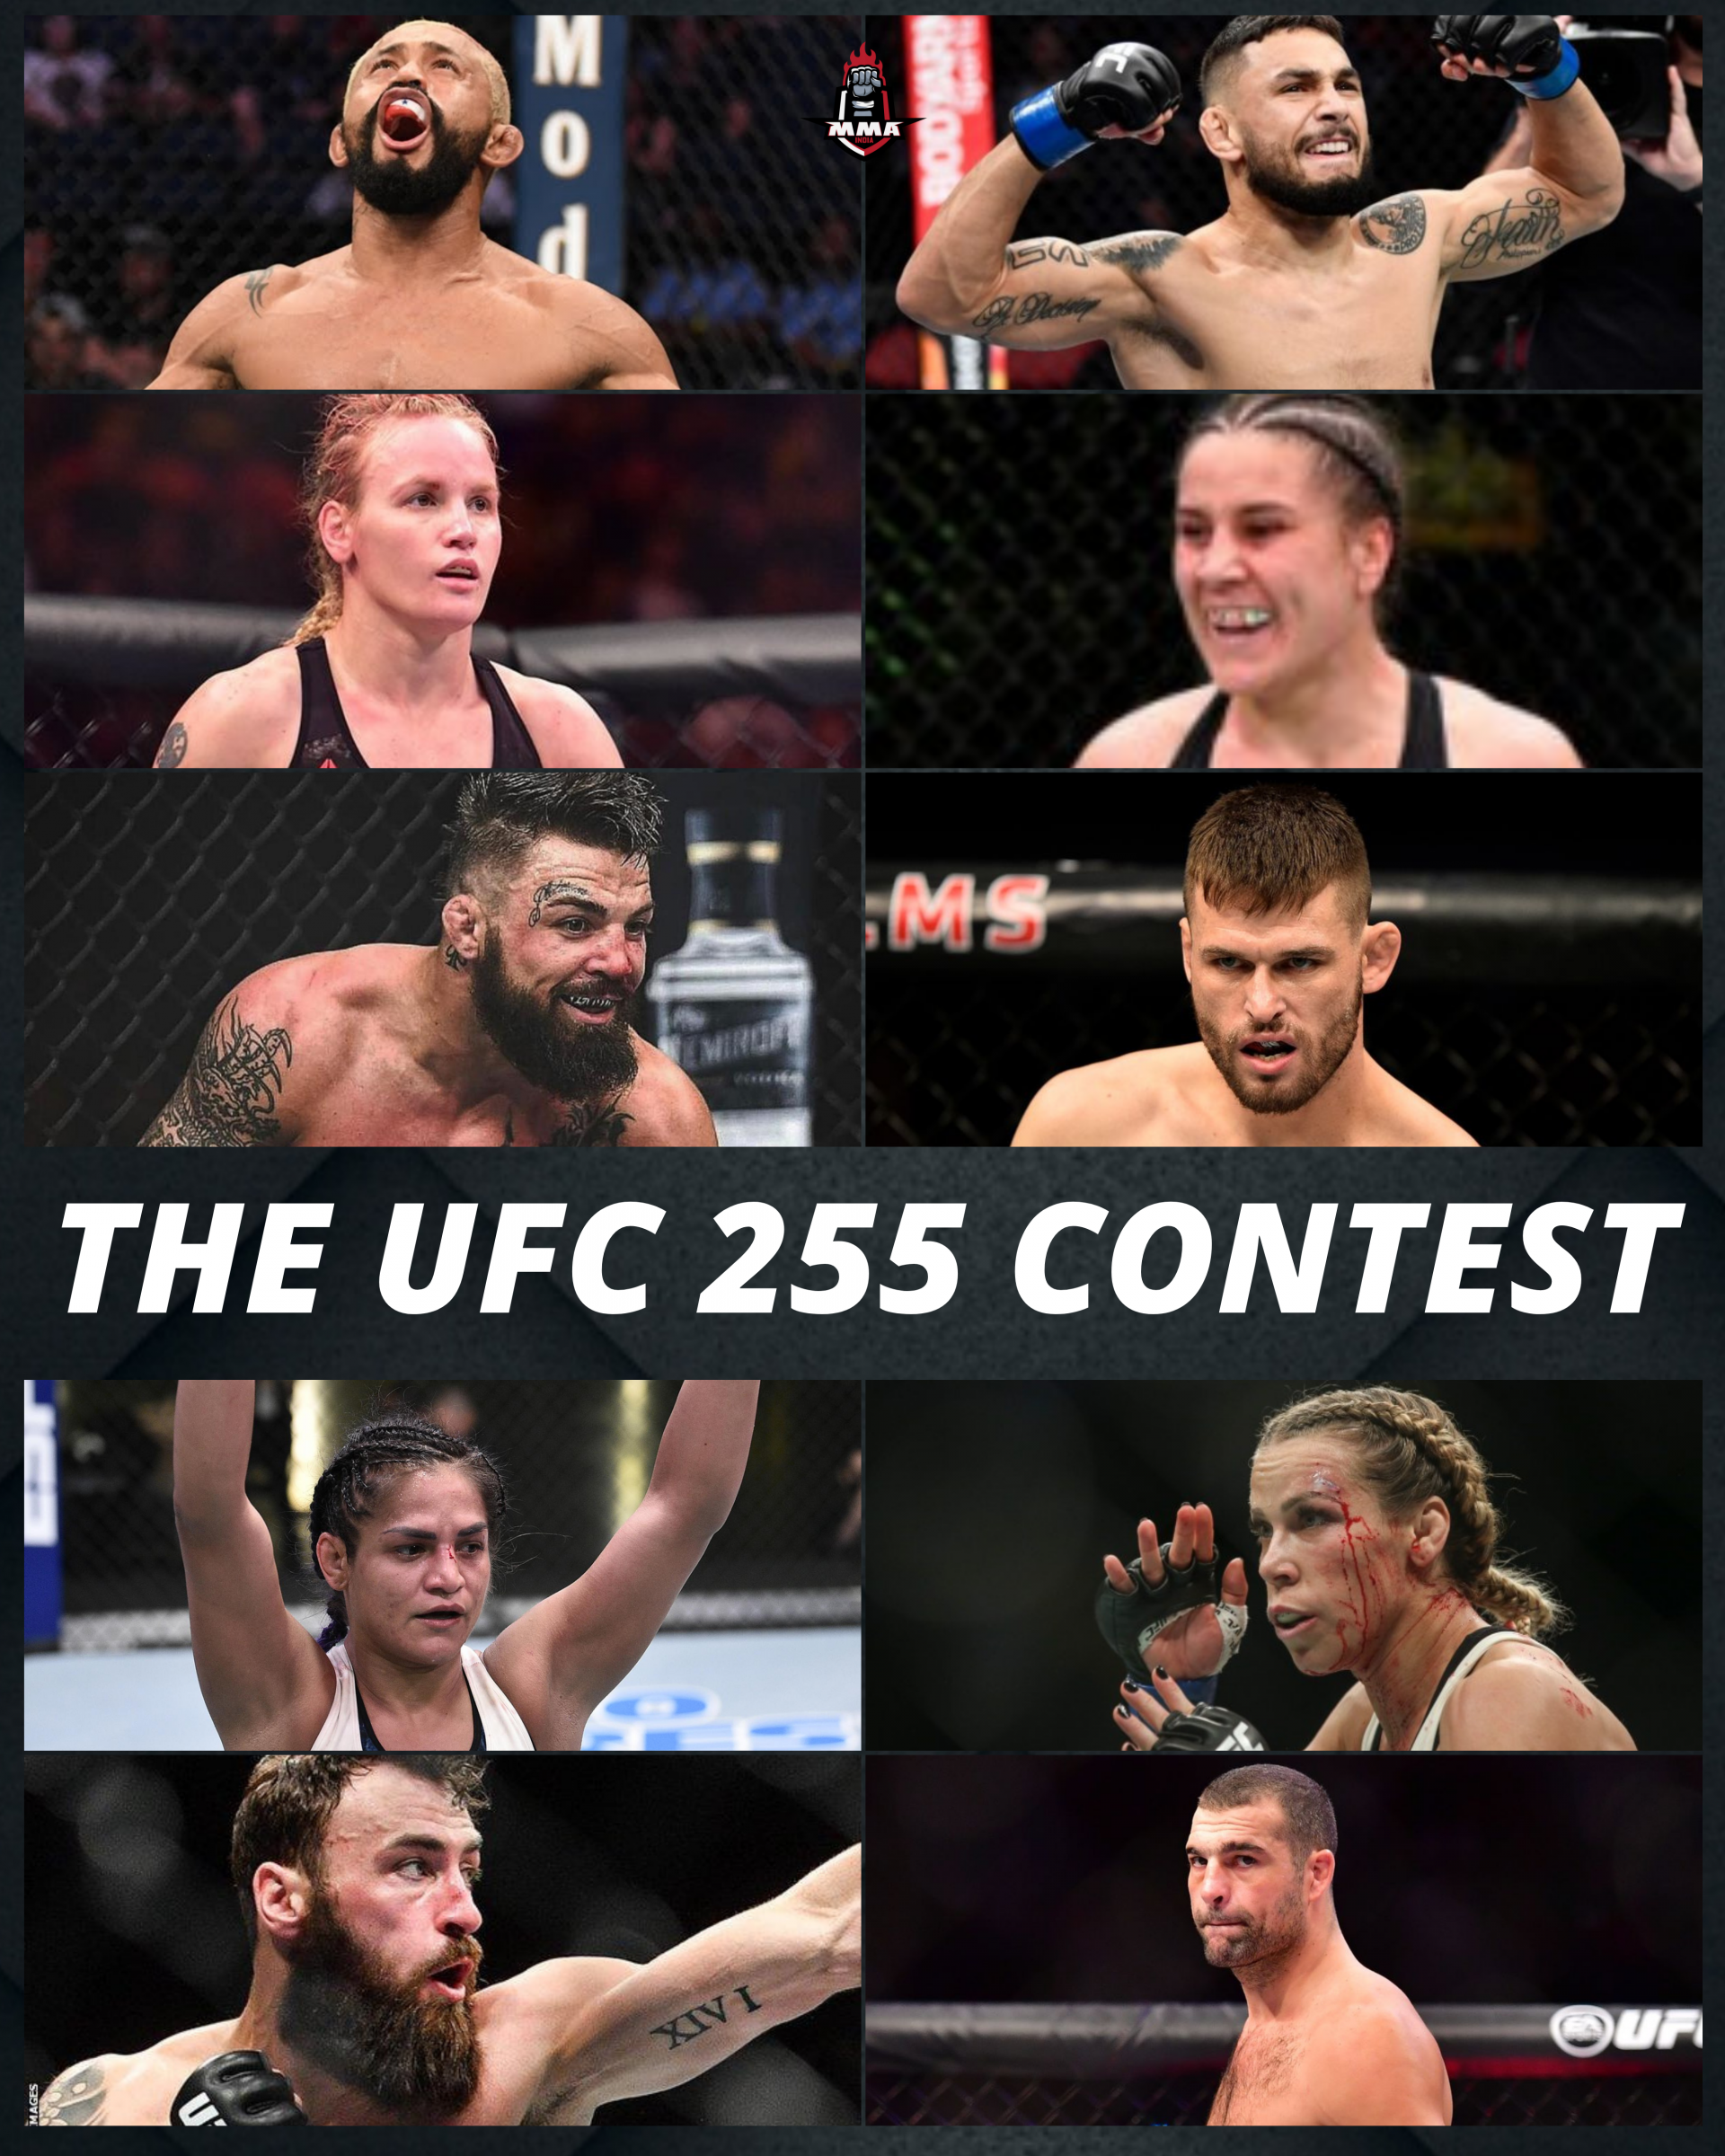 THE UFC 255 CONTEST | MMA INDIA SHOW - UFC 255